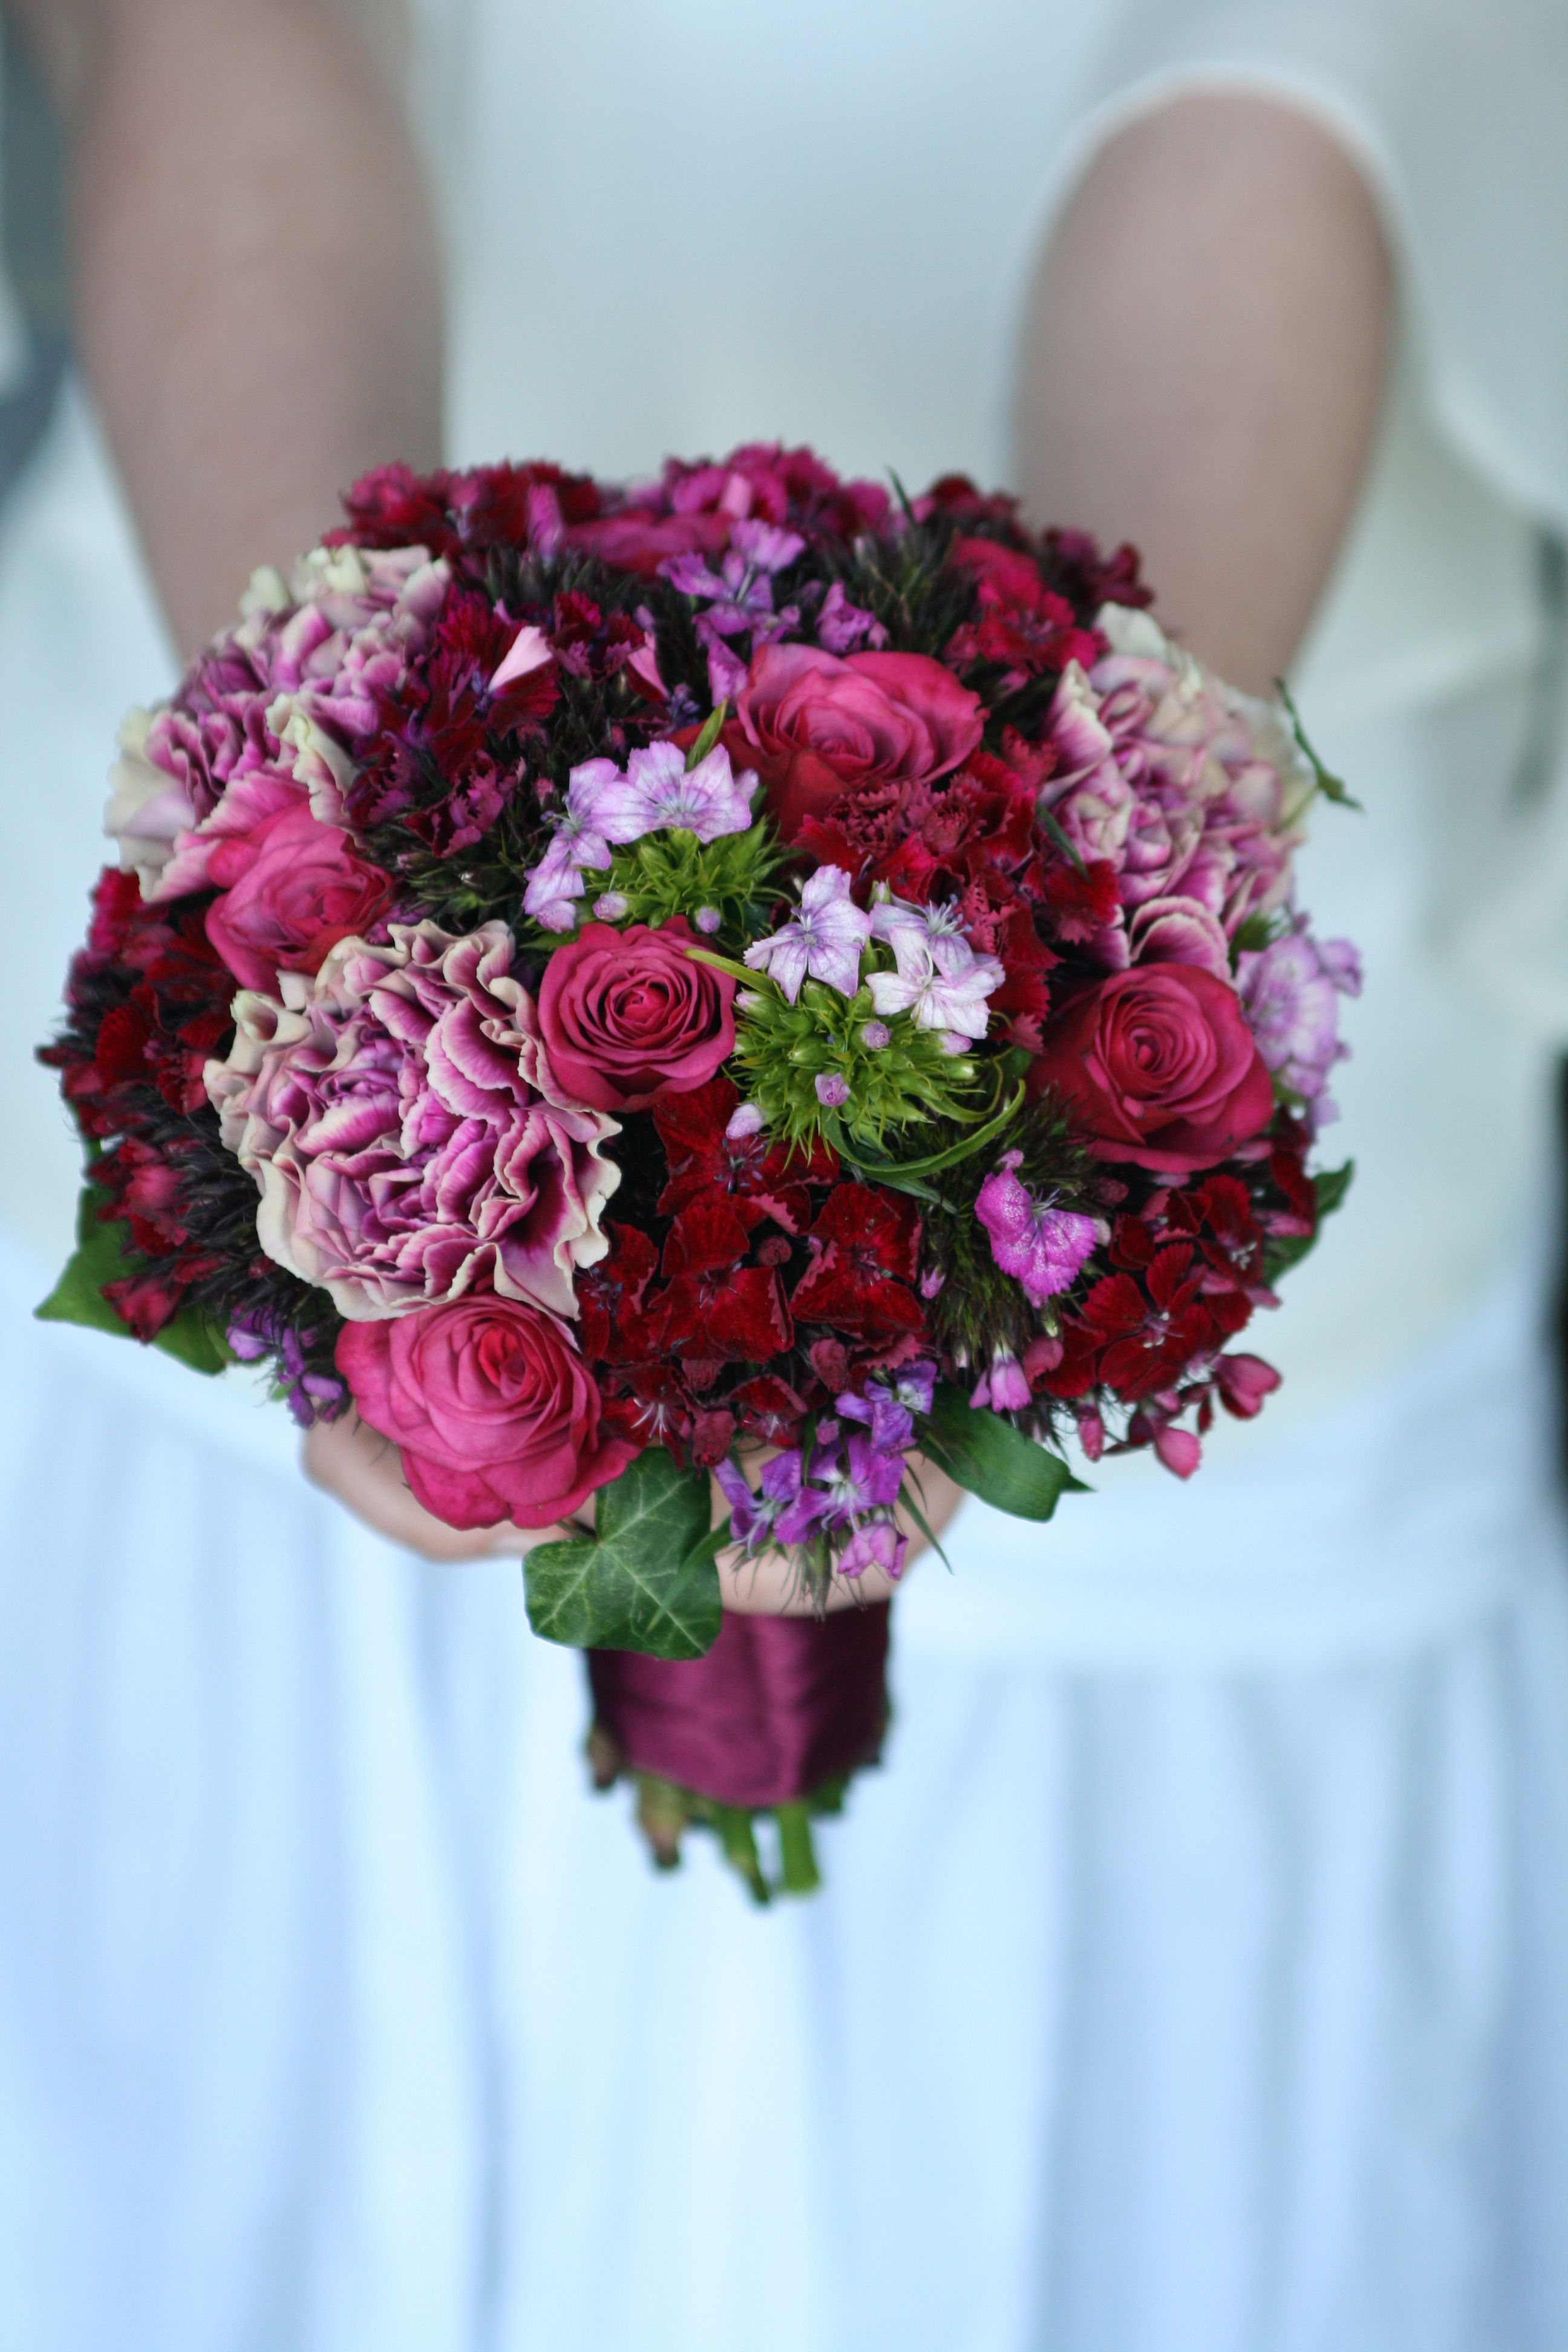 Bouquet of sweet william, dianthus, roses and ivy trails